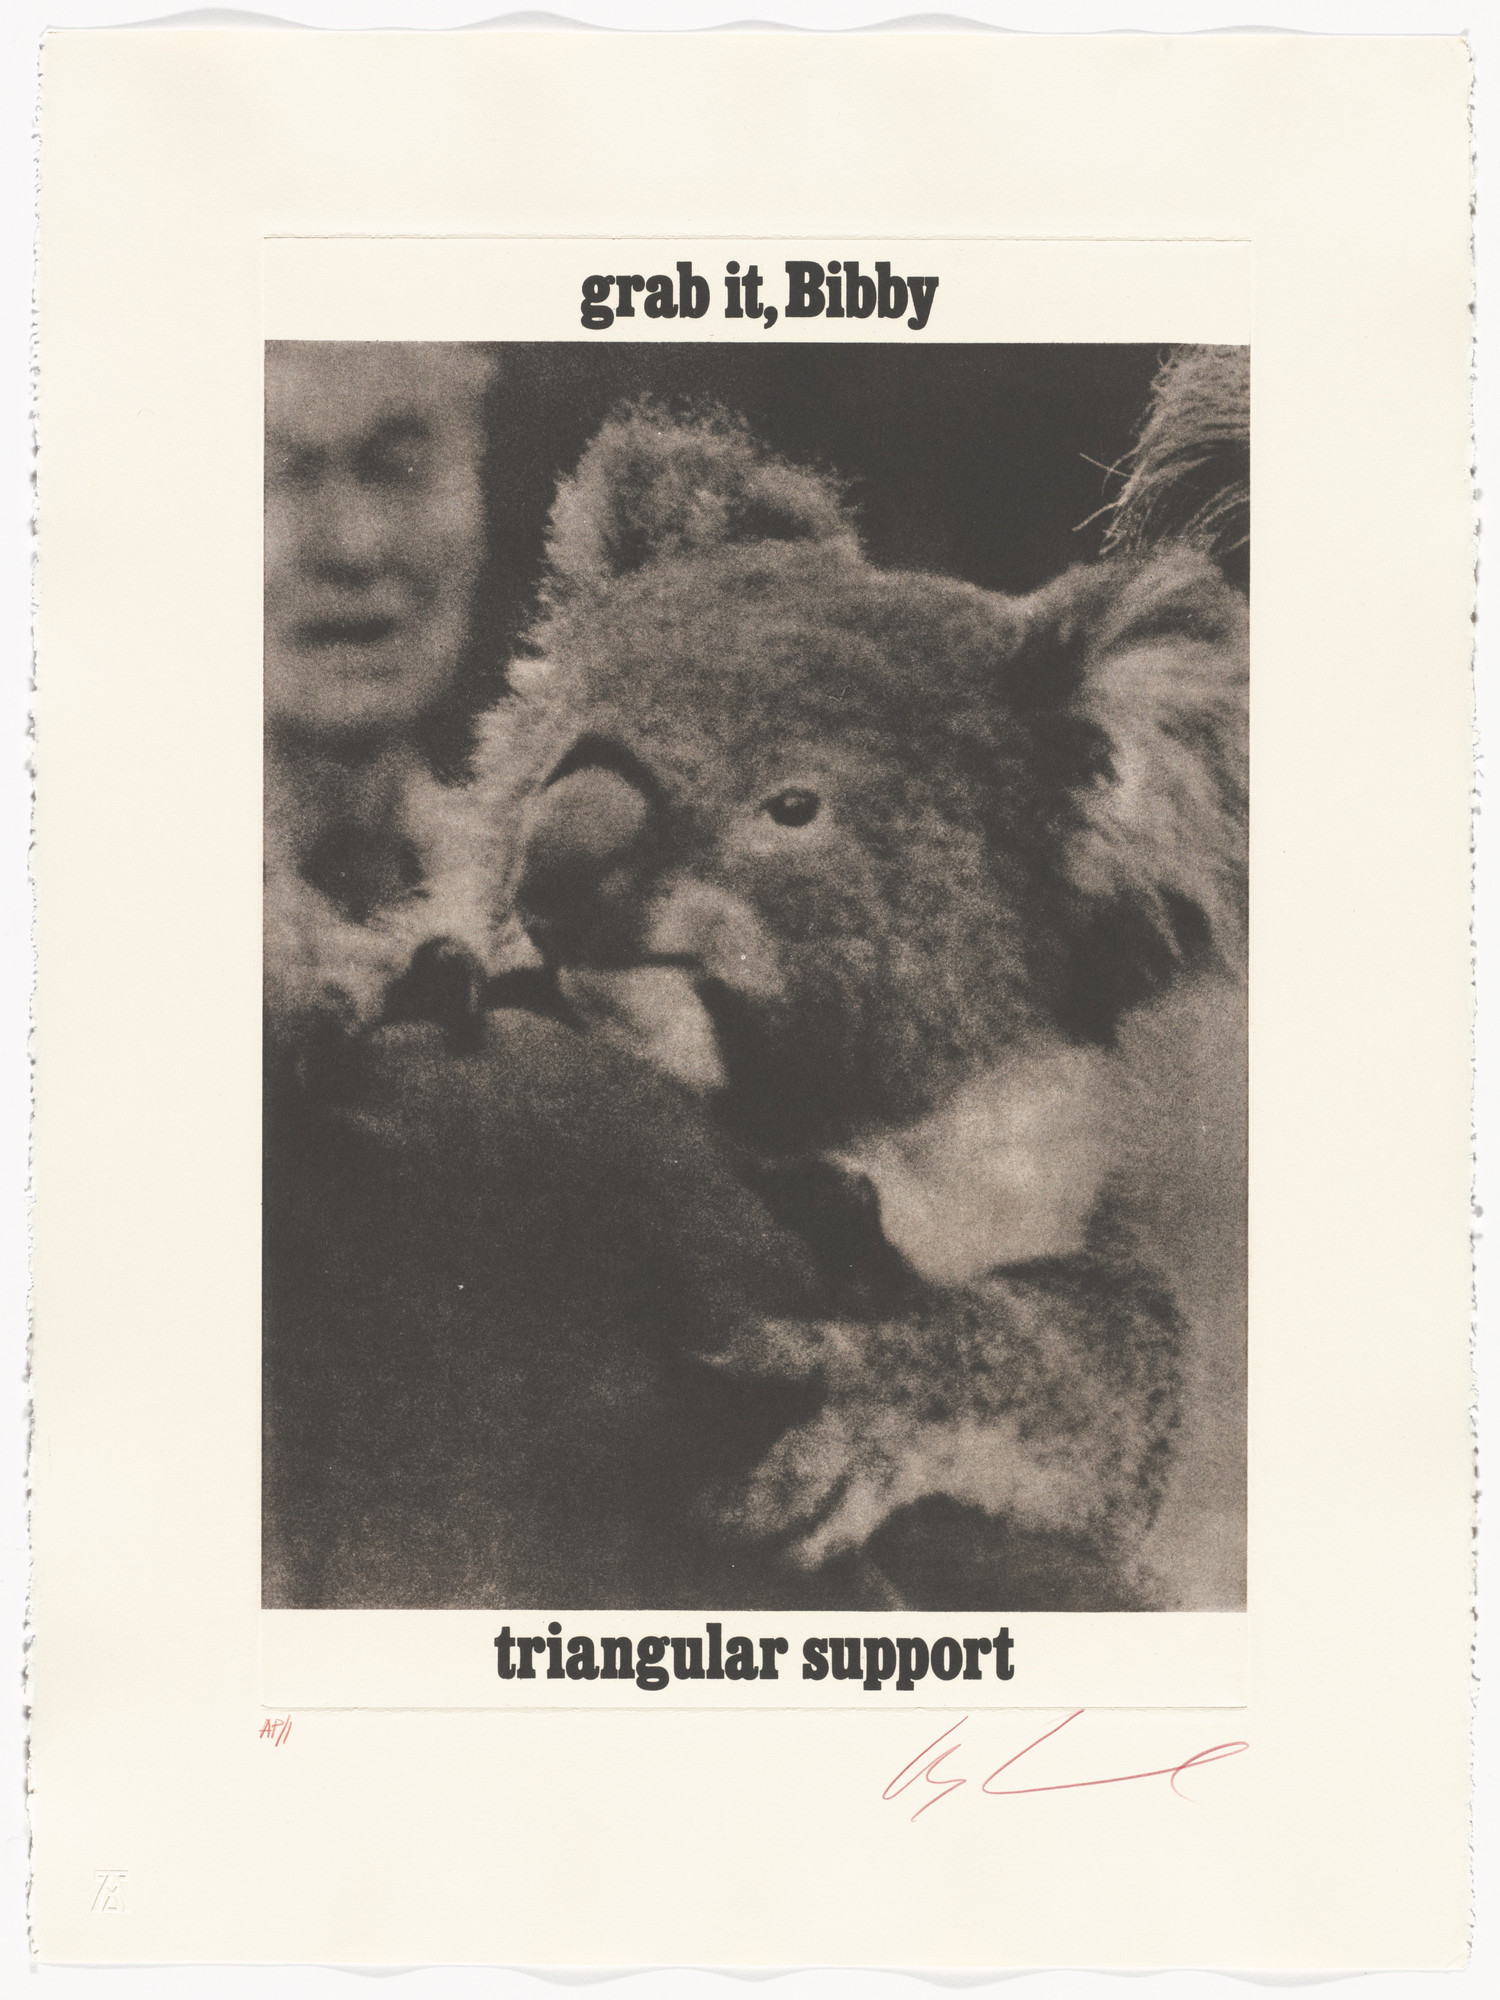 Les Levine. Grab it, Bibby / Triangular Support from the series Brown Bears. 1978